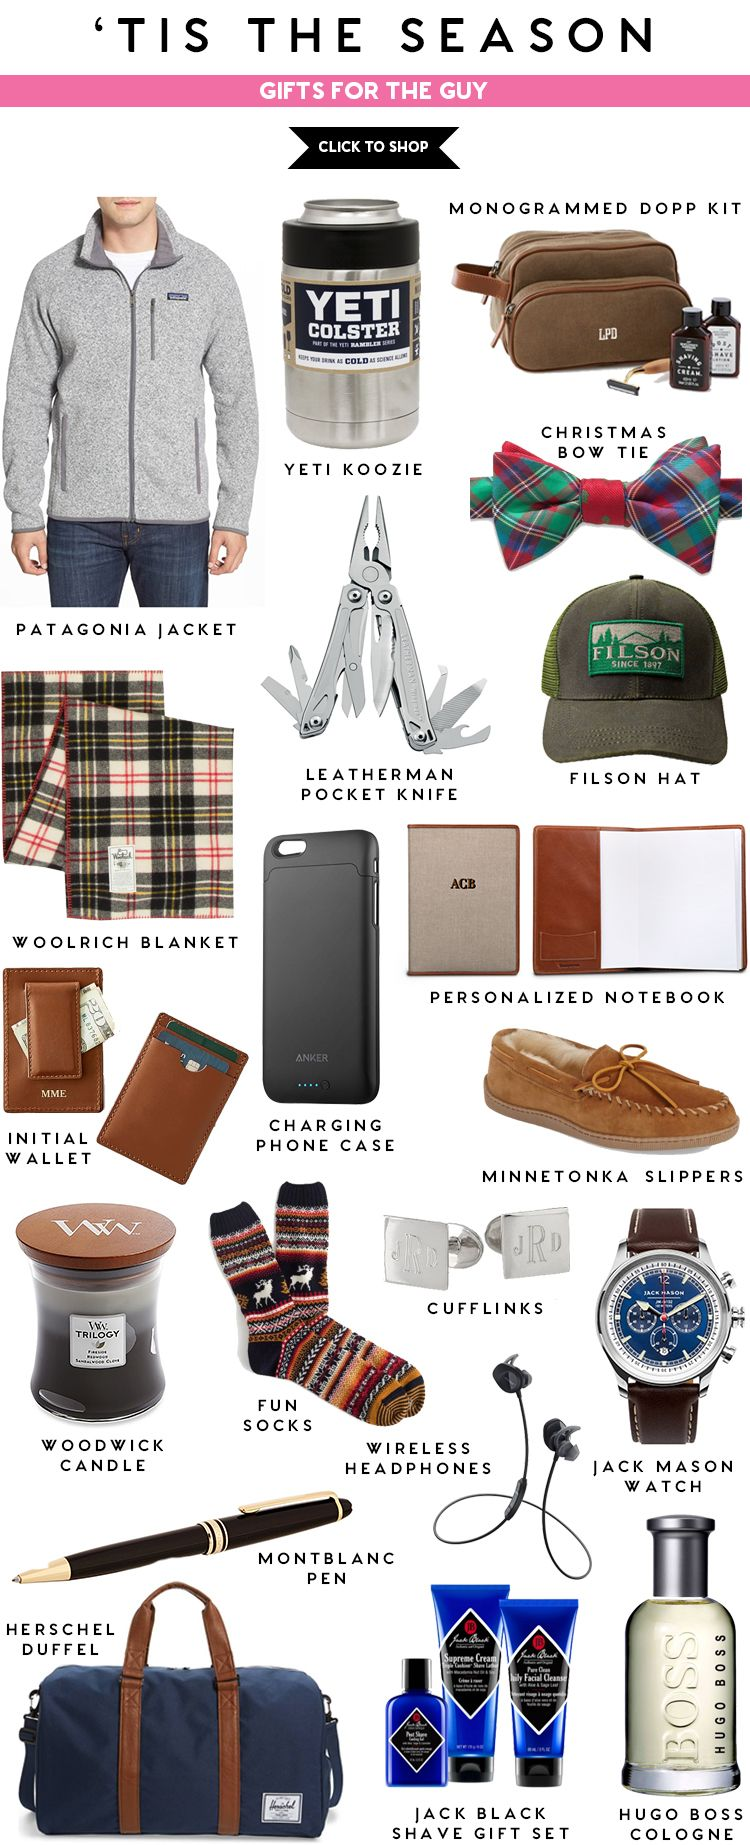 Tis The Season Gifts For The Guy A Lonestar State Of Southern Guy Friend Gifts Christmas Gifts For Men Unique Gifts For Men